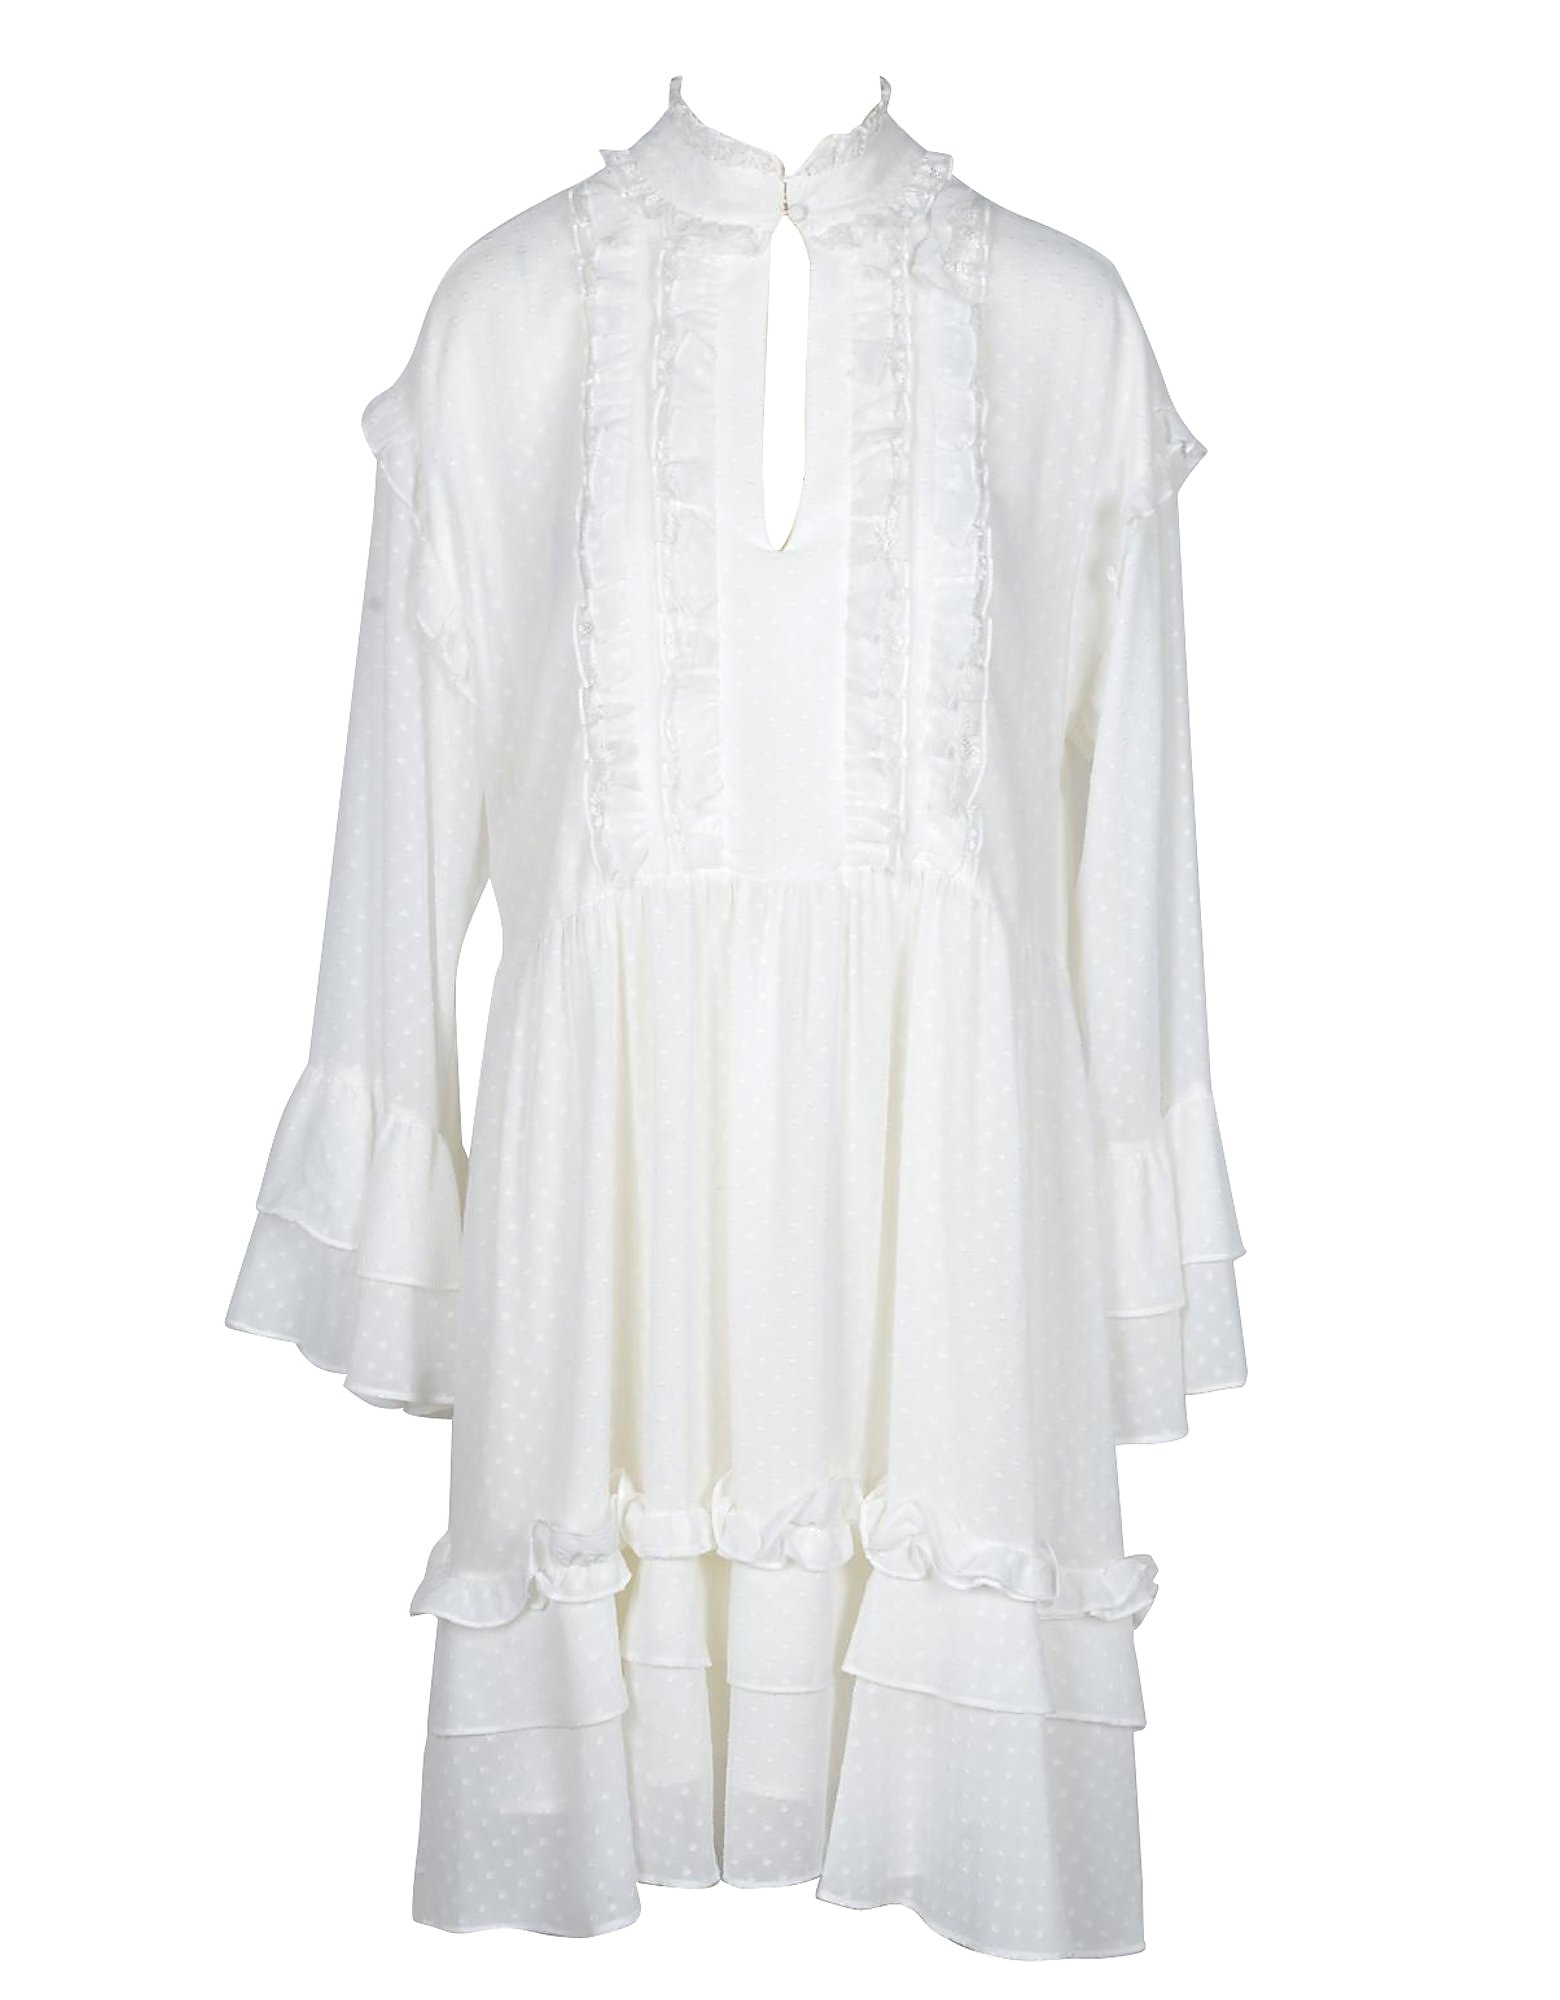 TWIN SET 连衣裙、连衣裤, White Dots and Ruffles Women's Dress